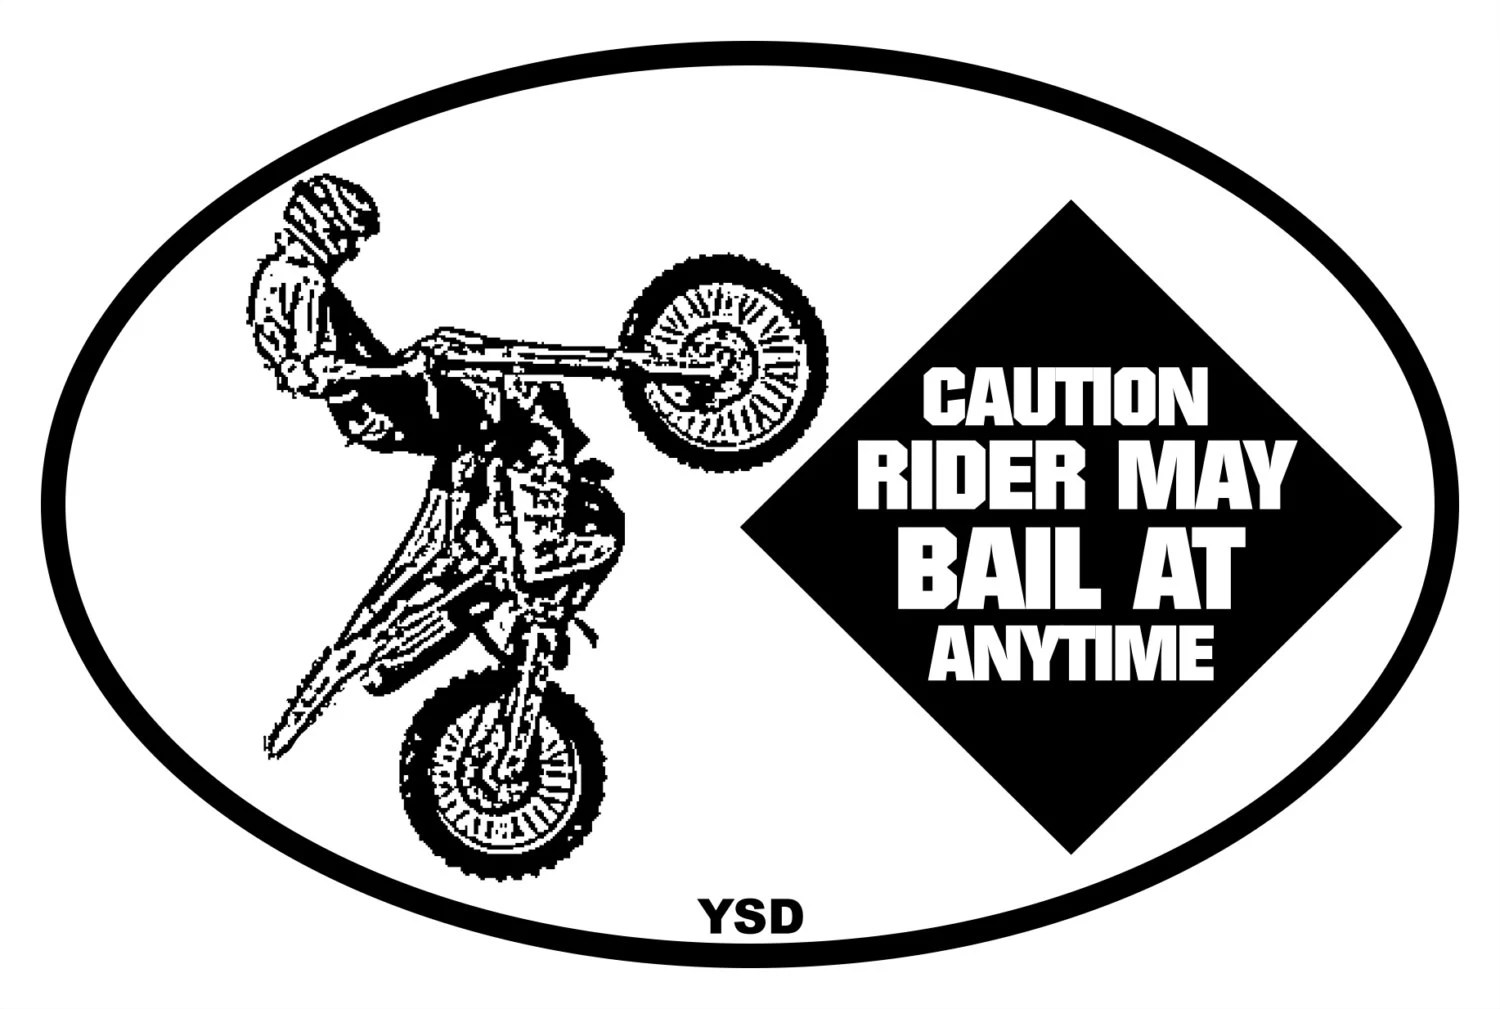 Caution Rider May Bail at Anytime 4x6 Decal